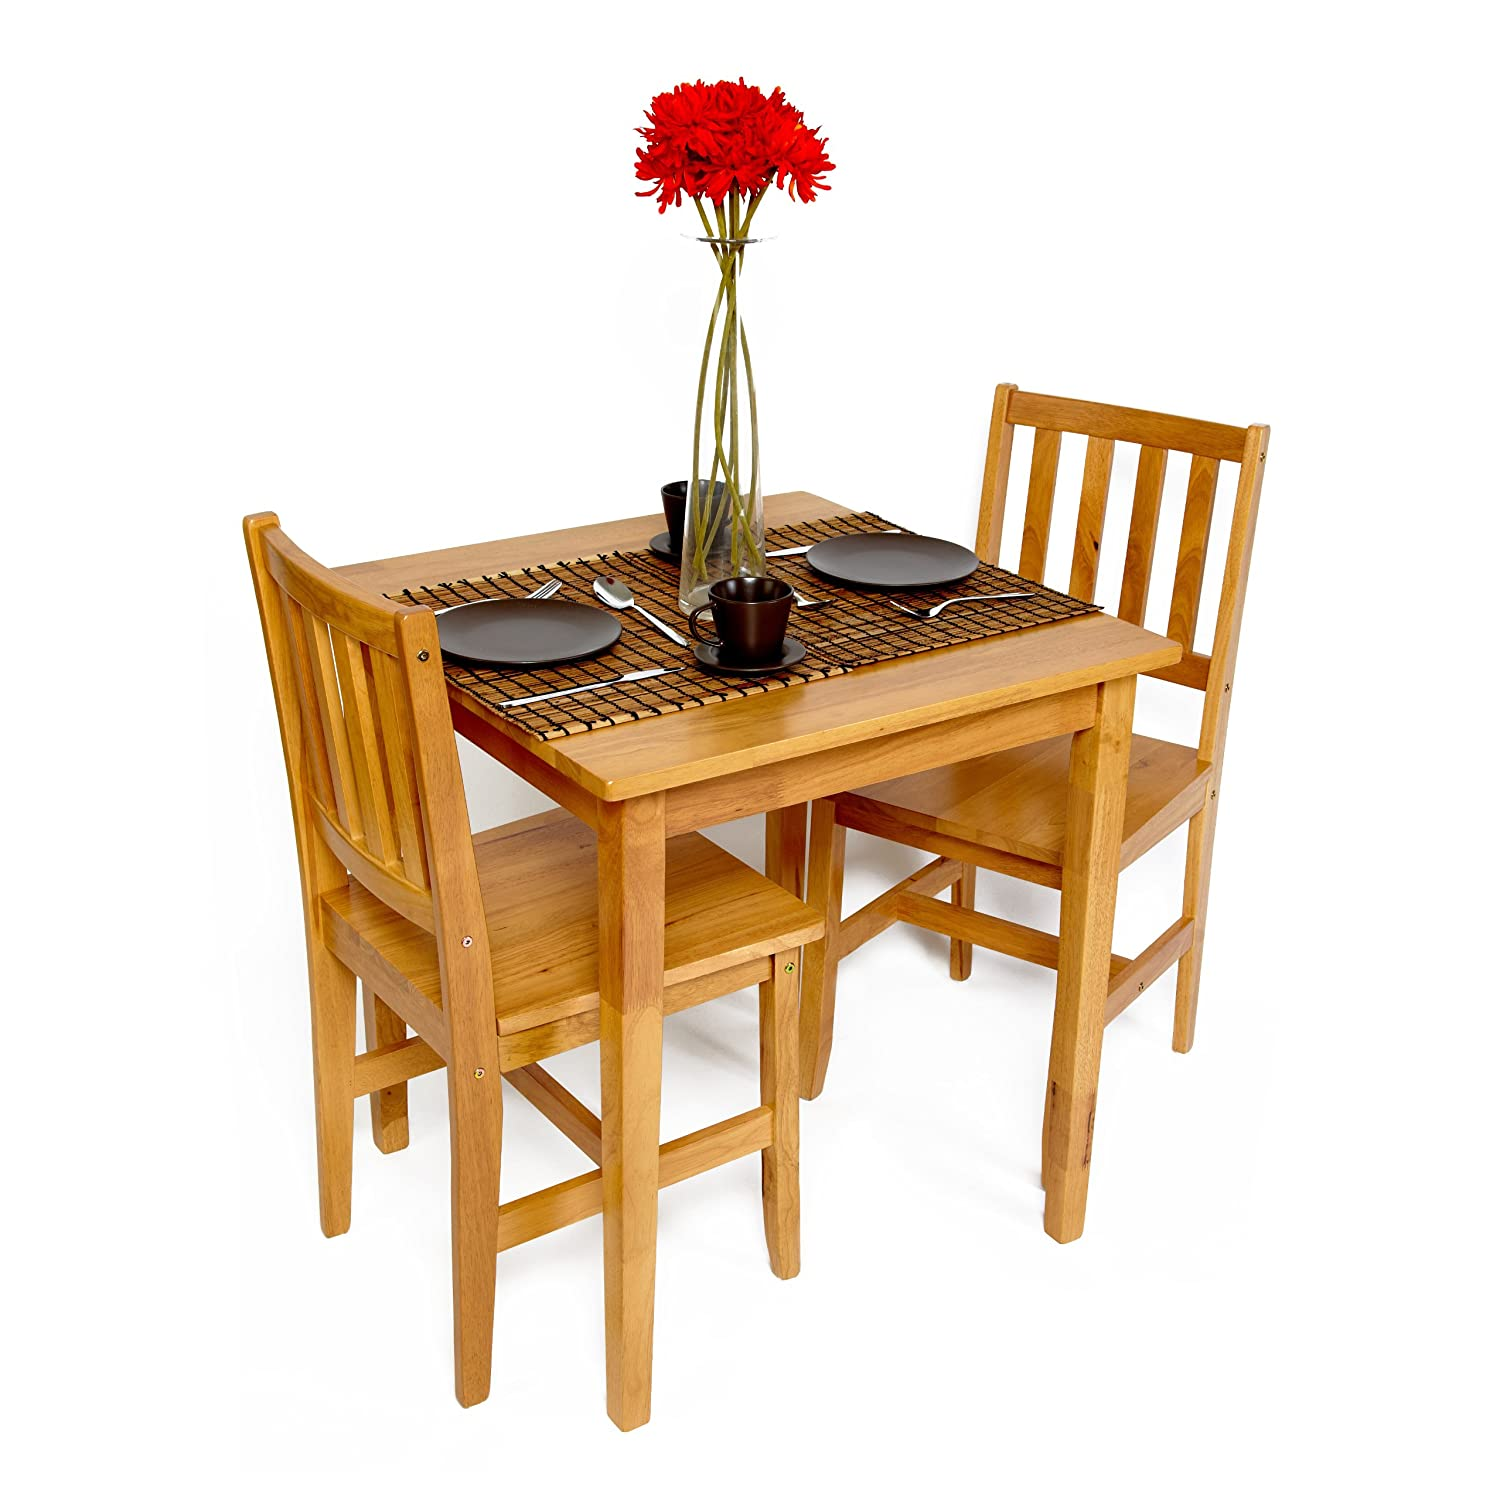 Table and chairs set dining bistro small cafe tables wood for Small dining set for 2